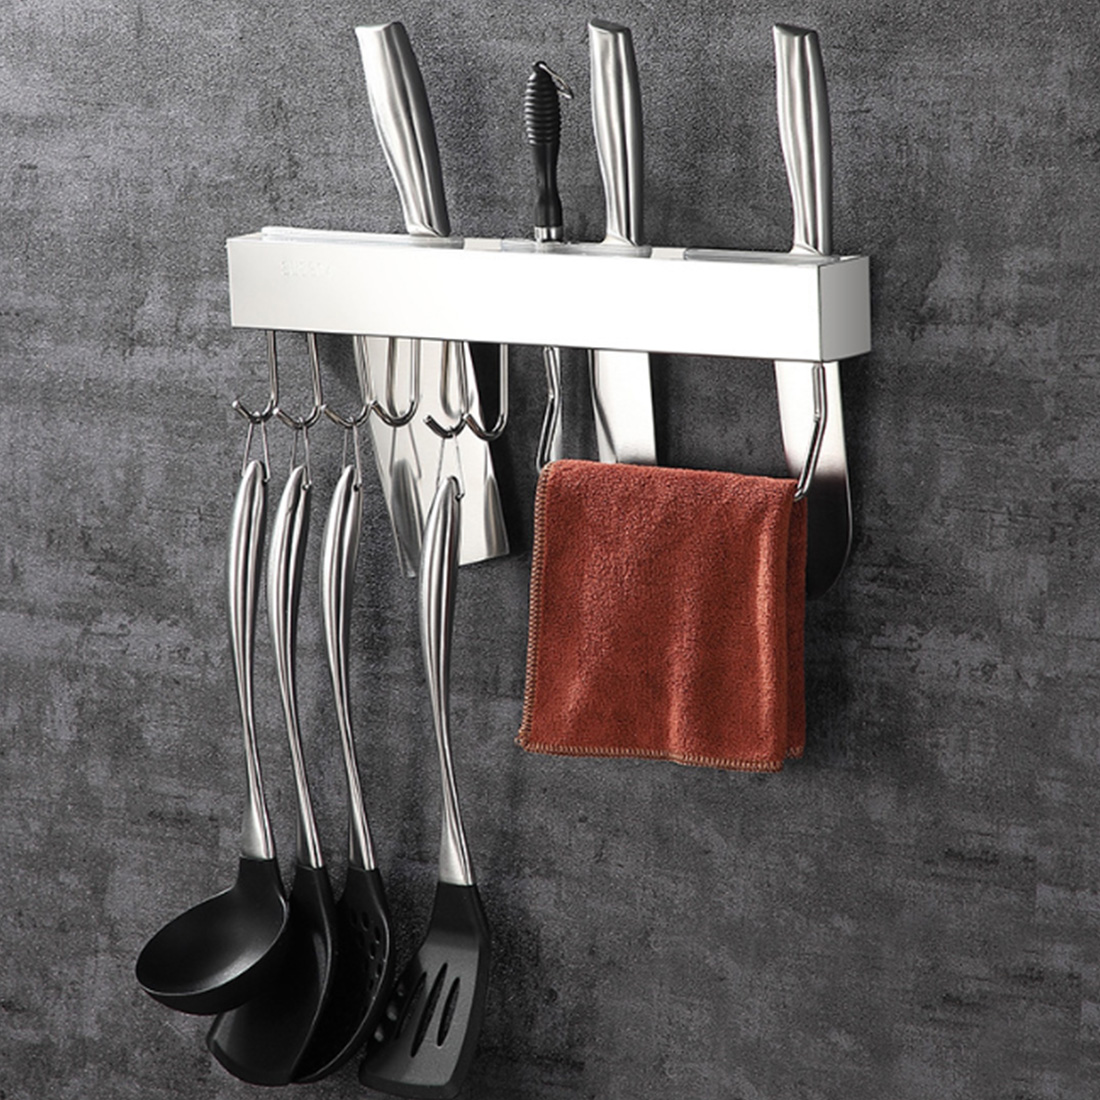 Multifunctional Slice Pot Kitchen Racks Cutter Slot Hook Storage Punching Free Stainless Steel Wall Mounted Easy Install Holder